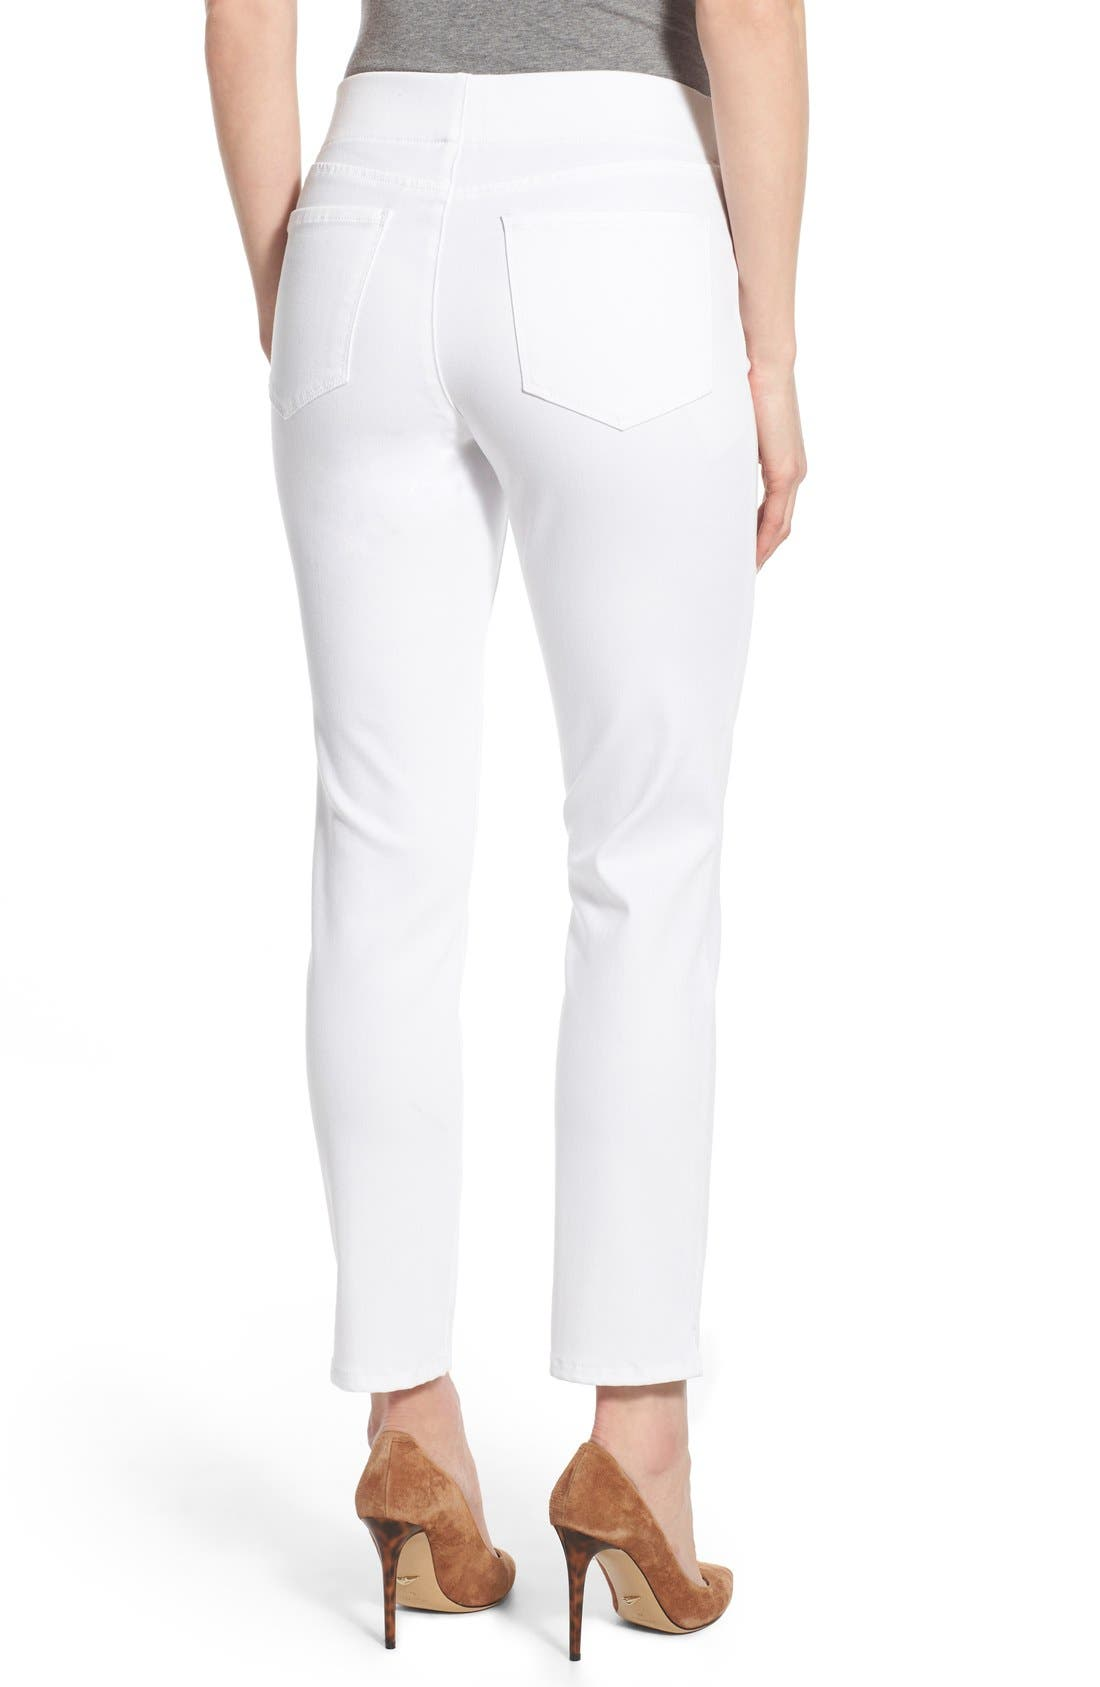 'Millie' Pull-On Stretch Ankle Skinny Jeans,                             Alternate thumbnail 2, color,                             Endless White